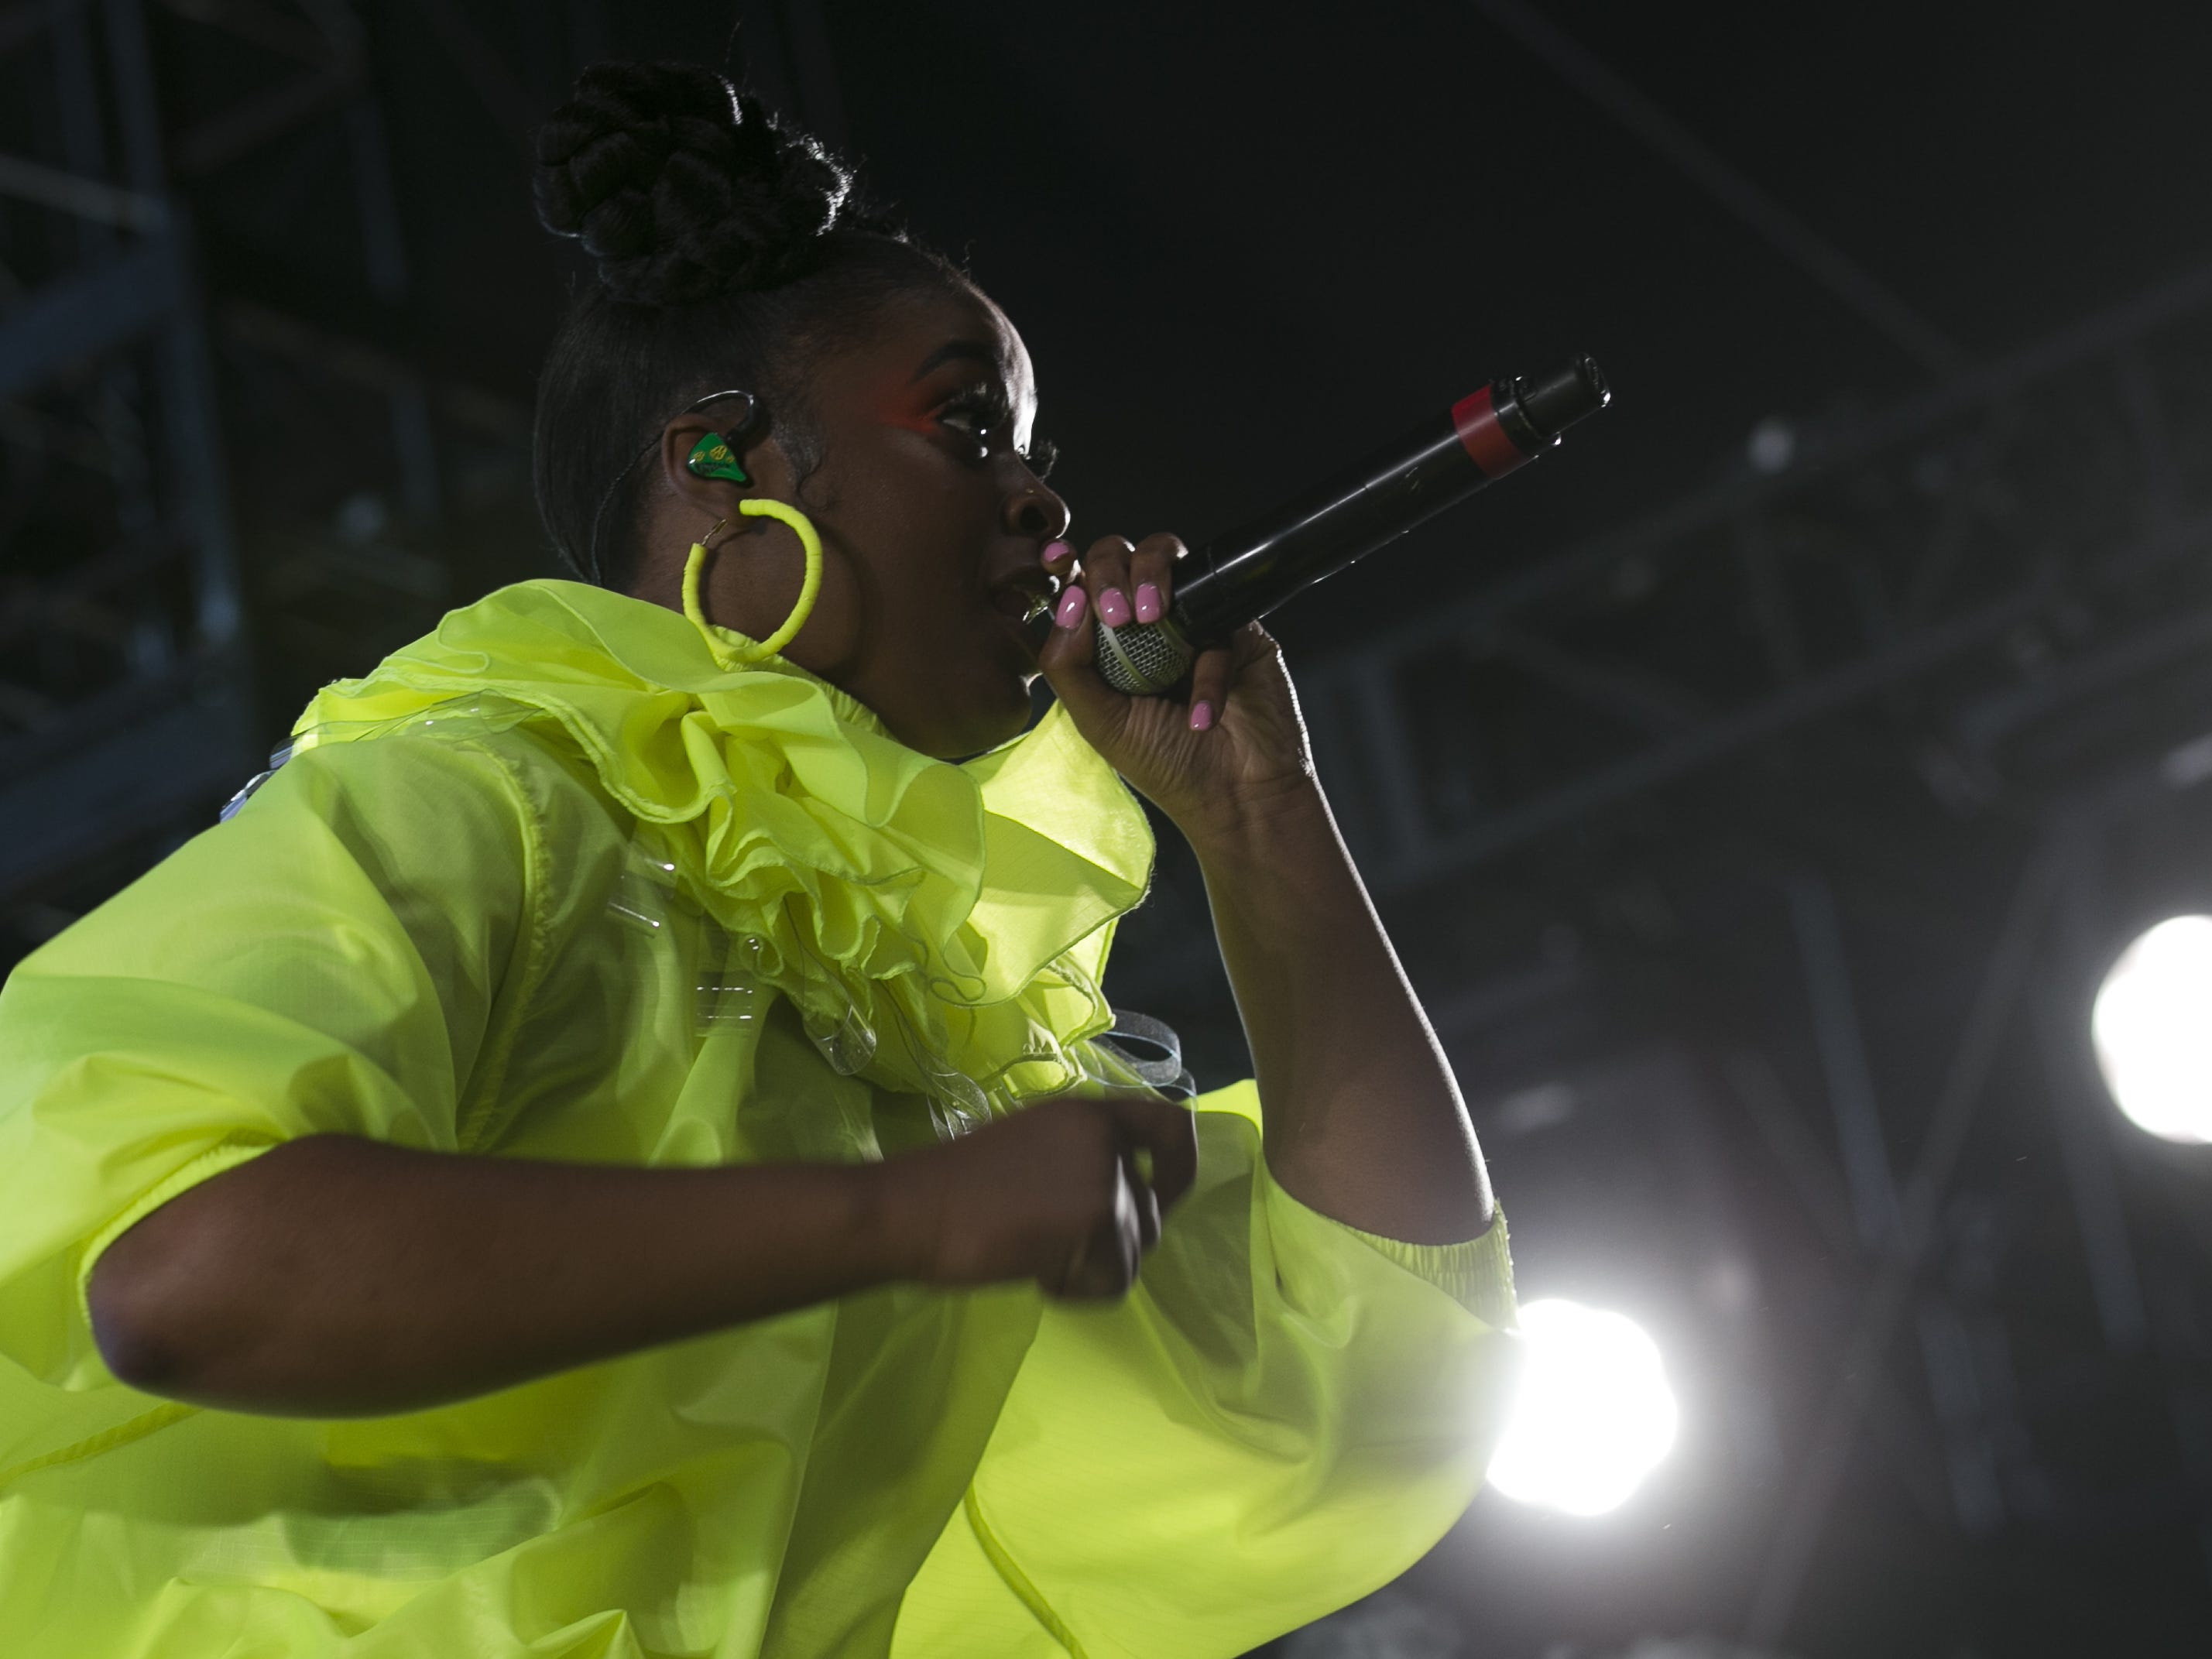 Tierra Whack performs on stage at the Coachella Valley Music and Arts Festival in Indio, Calif. on April 12, 2019.